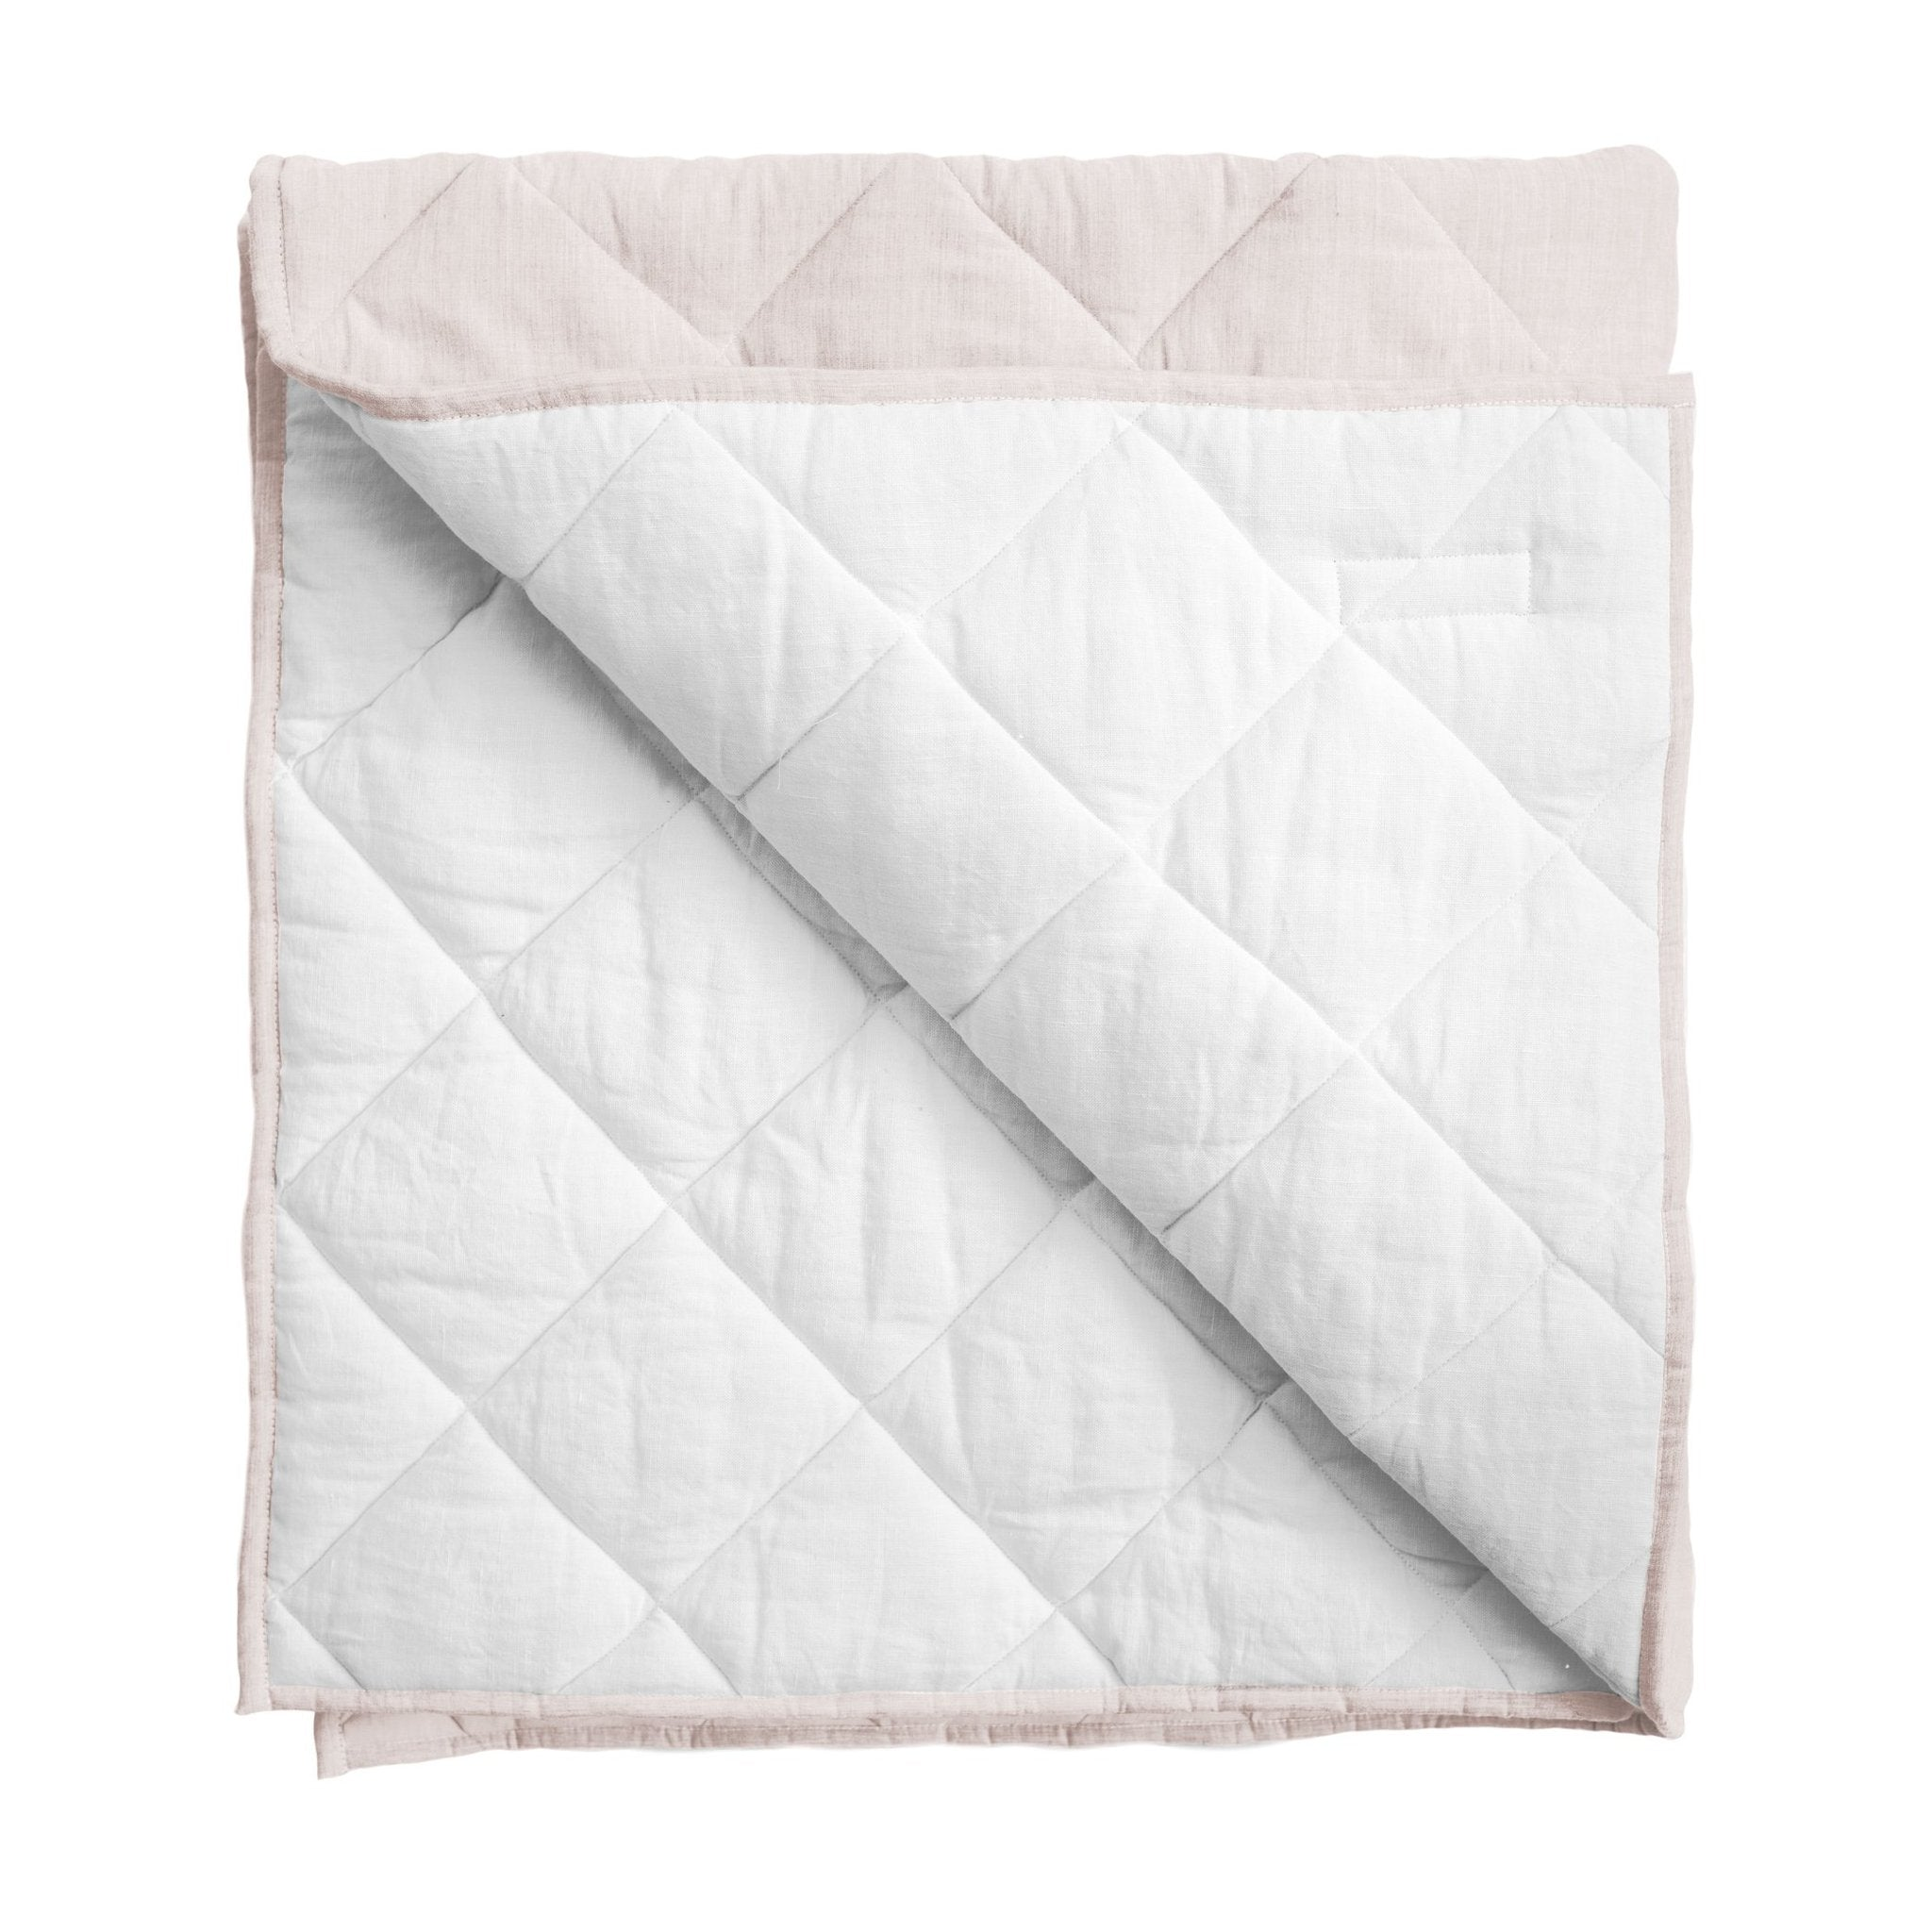 Play mat / Quilt | Blossom pink and white linen, reversible